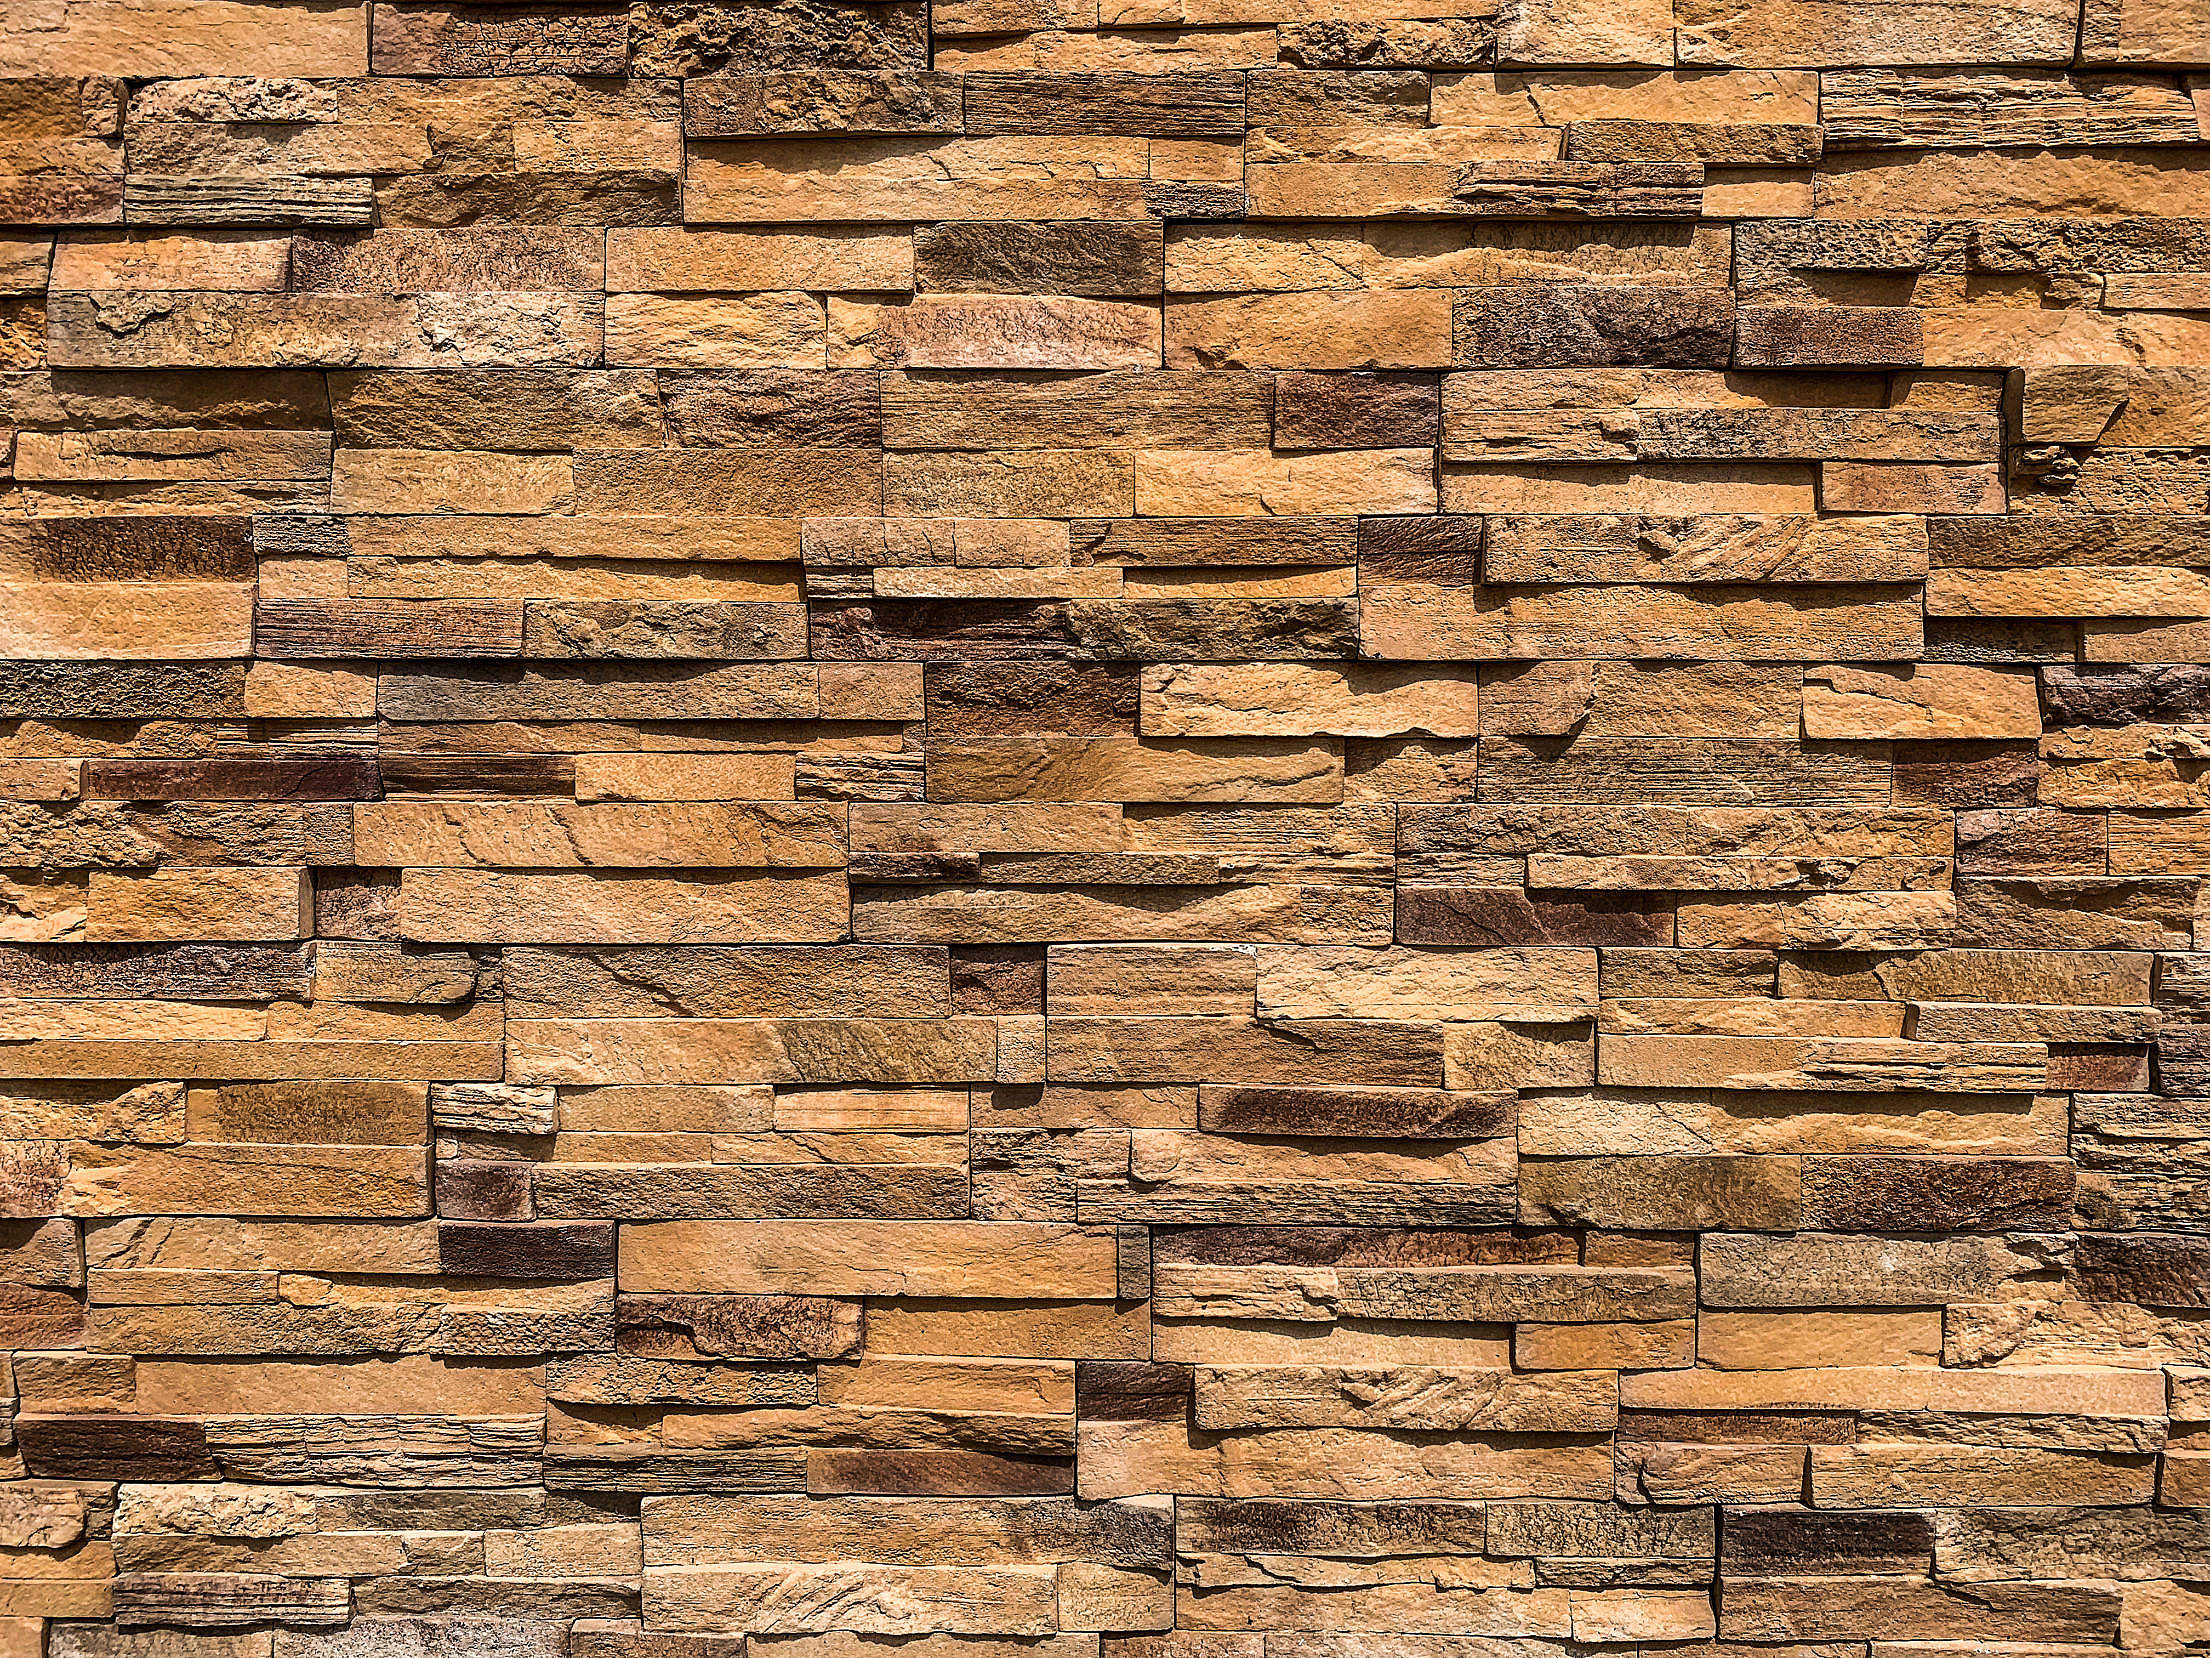 Stone Cladding Wall Free Stock Photo